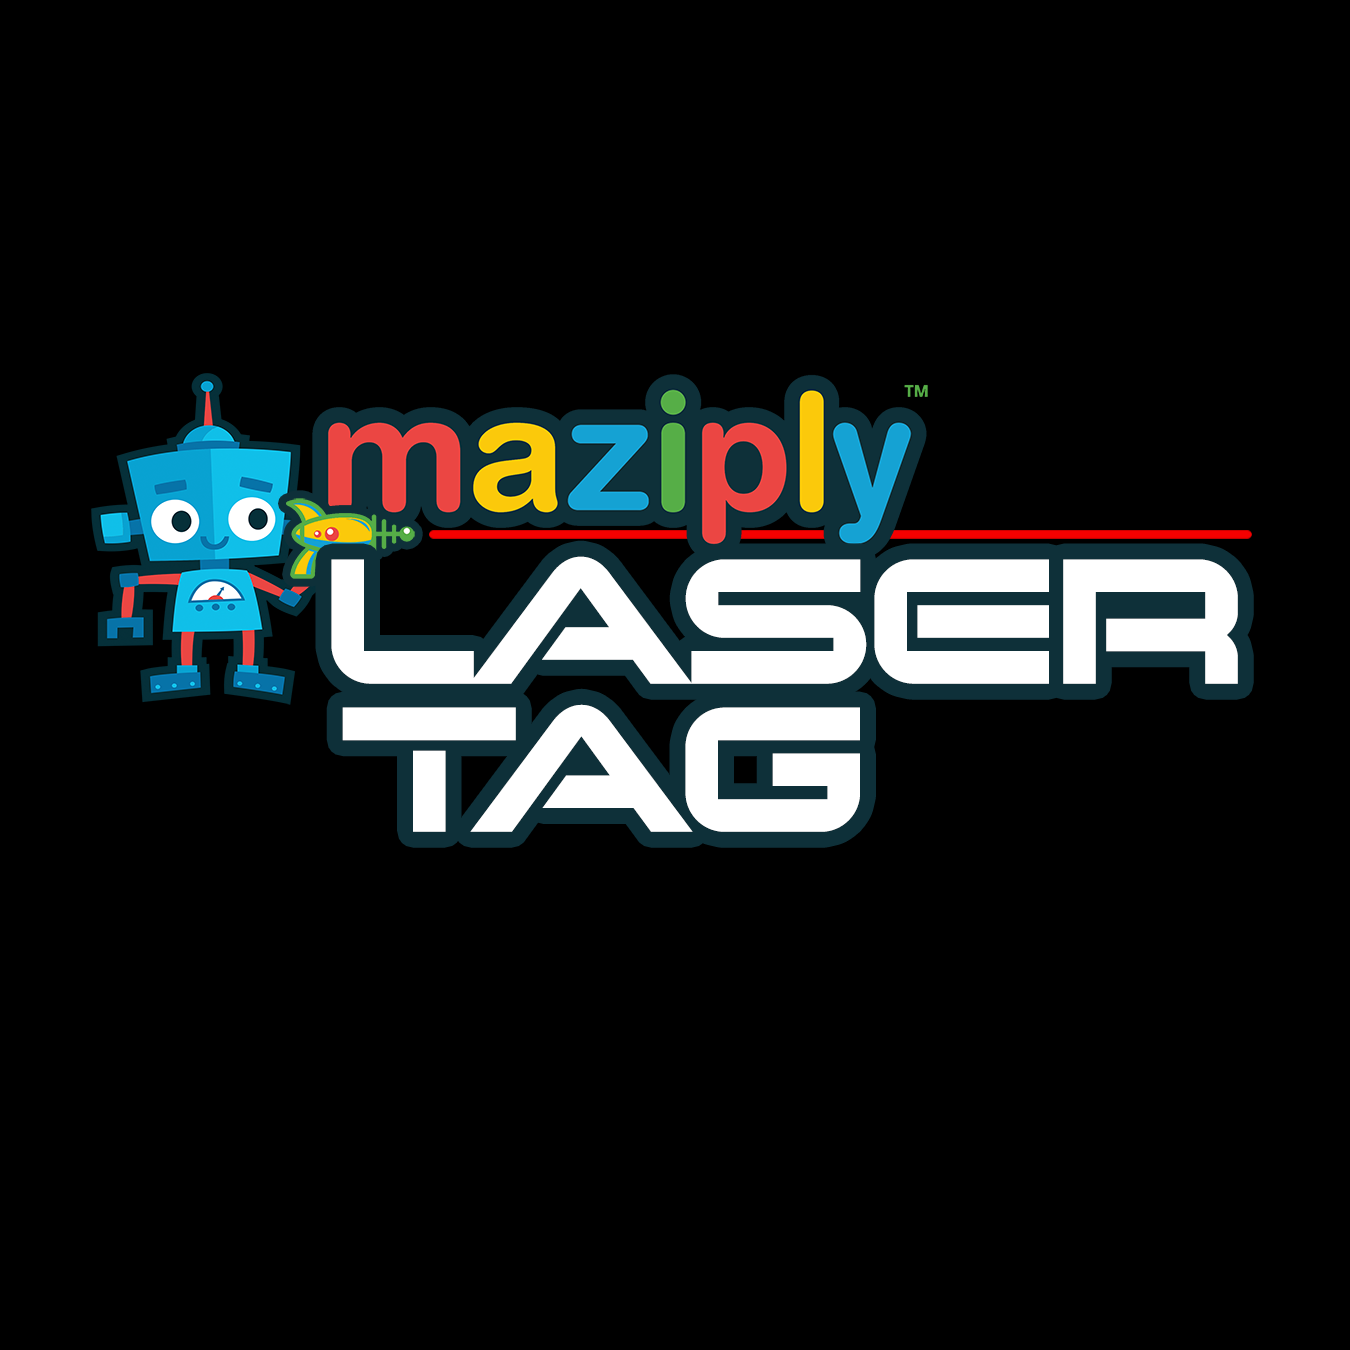 Maziply Laser Tag